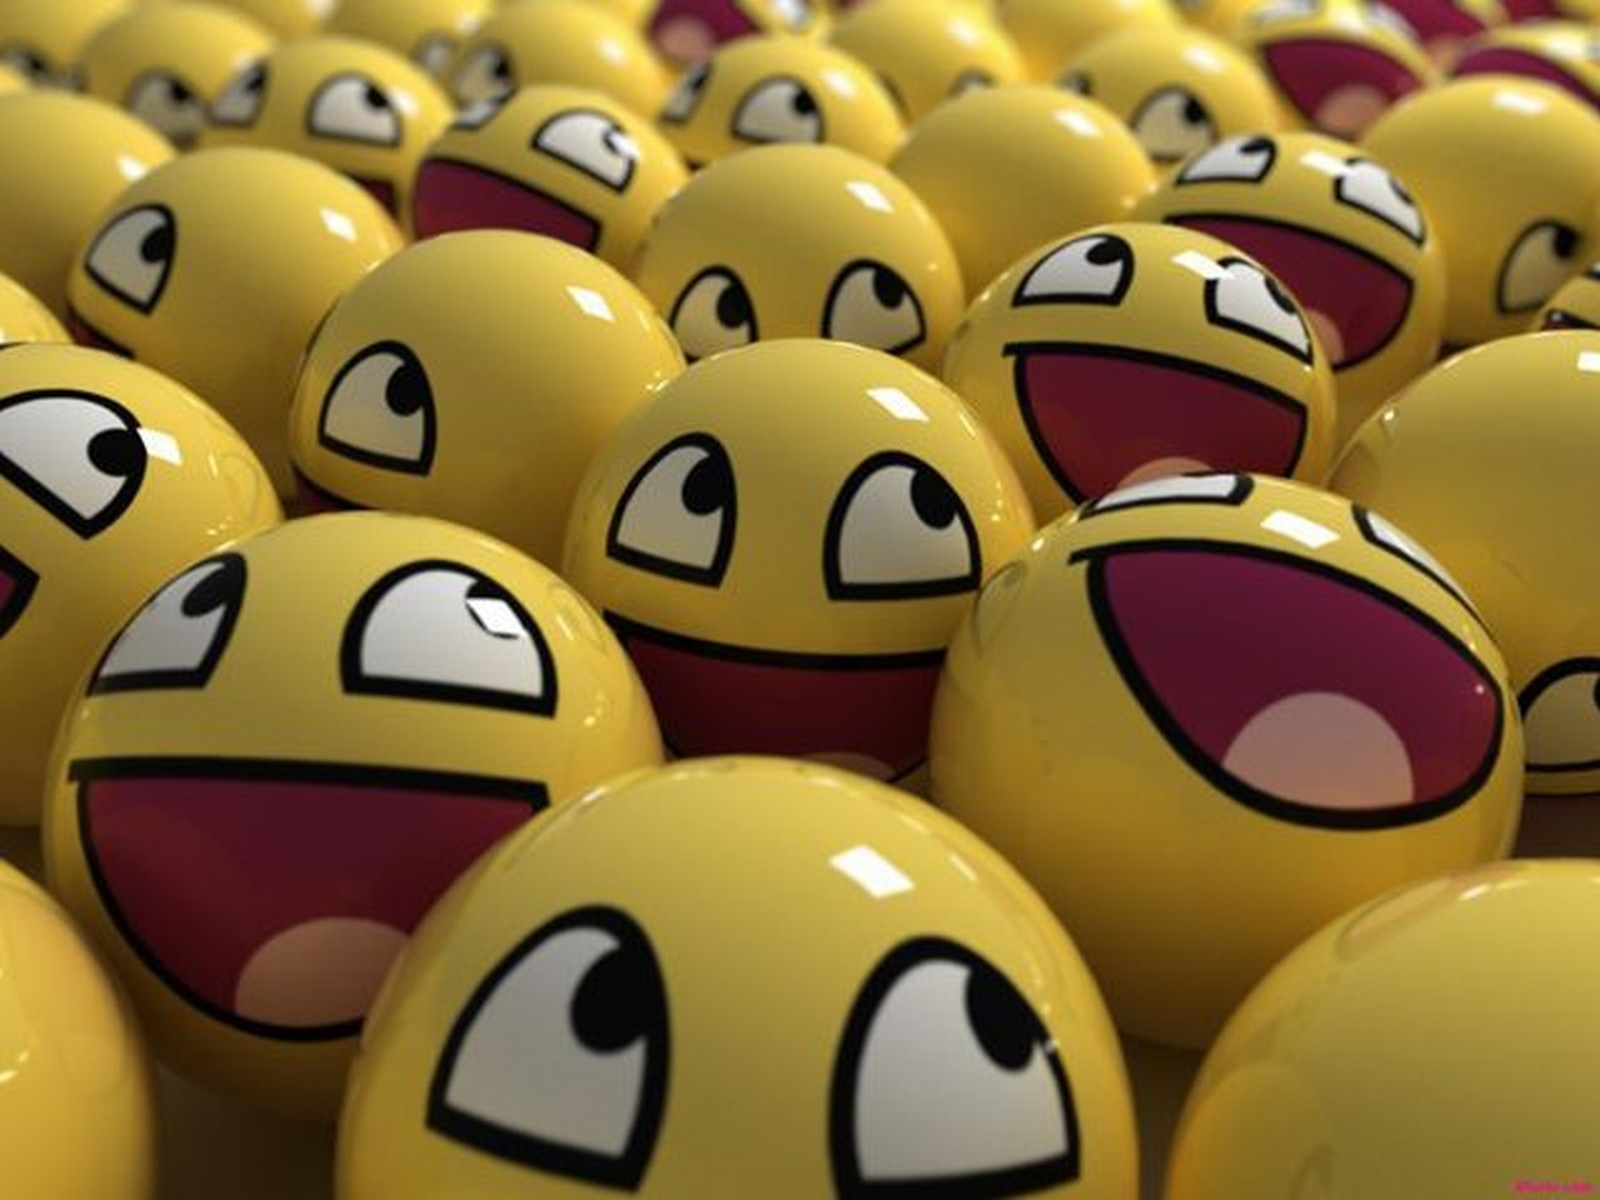 Top 20 Smiley Face Wallpaper: The History Of Acid House: Smiley Face History